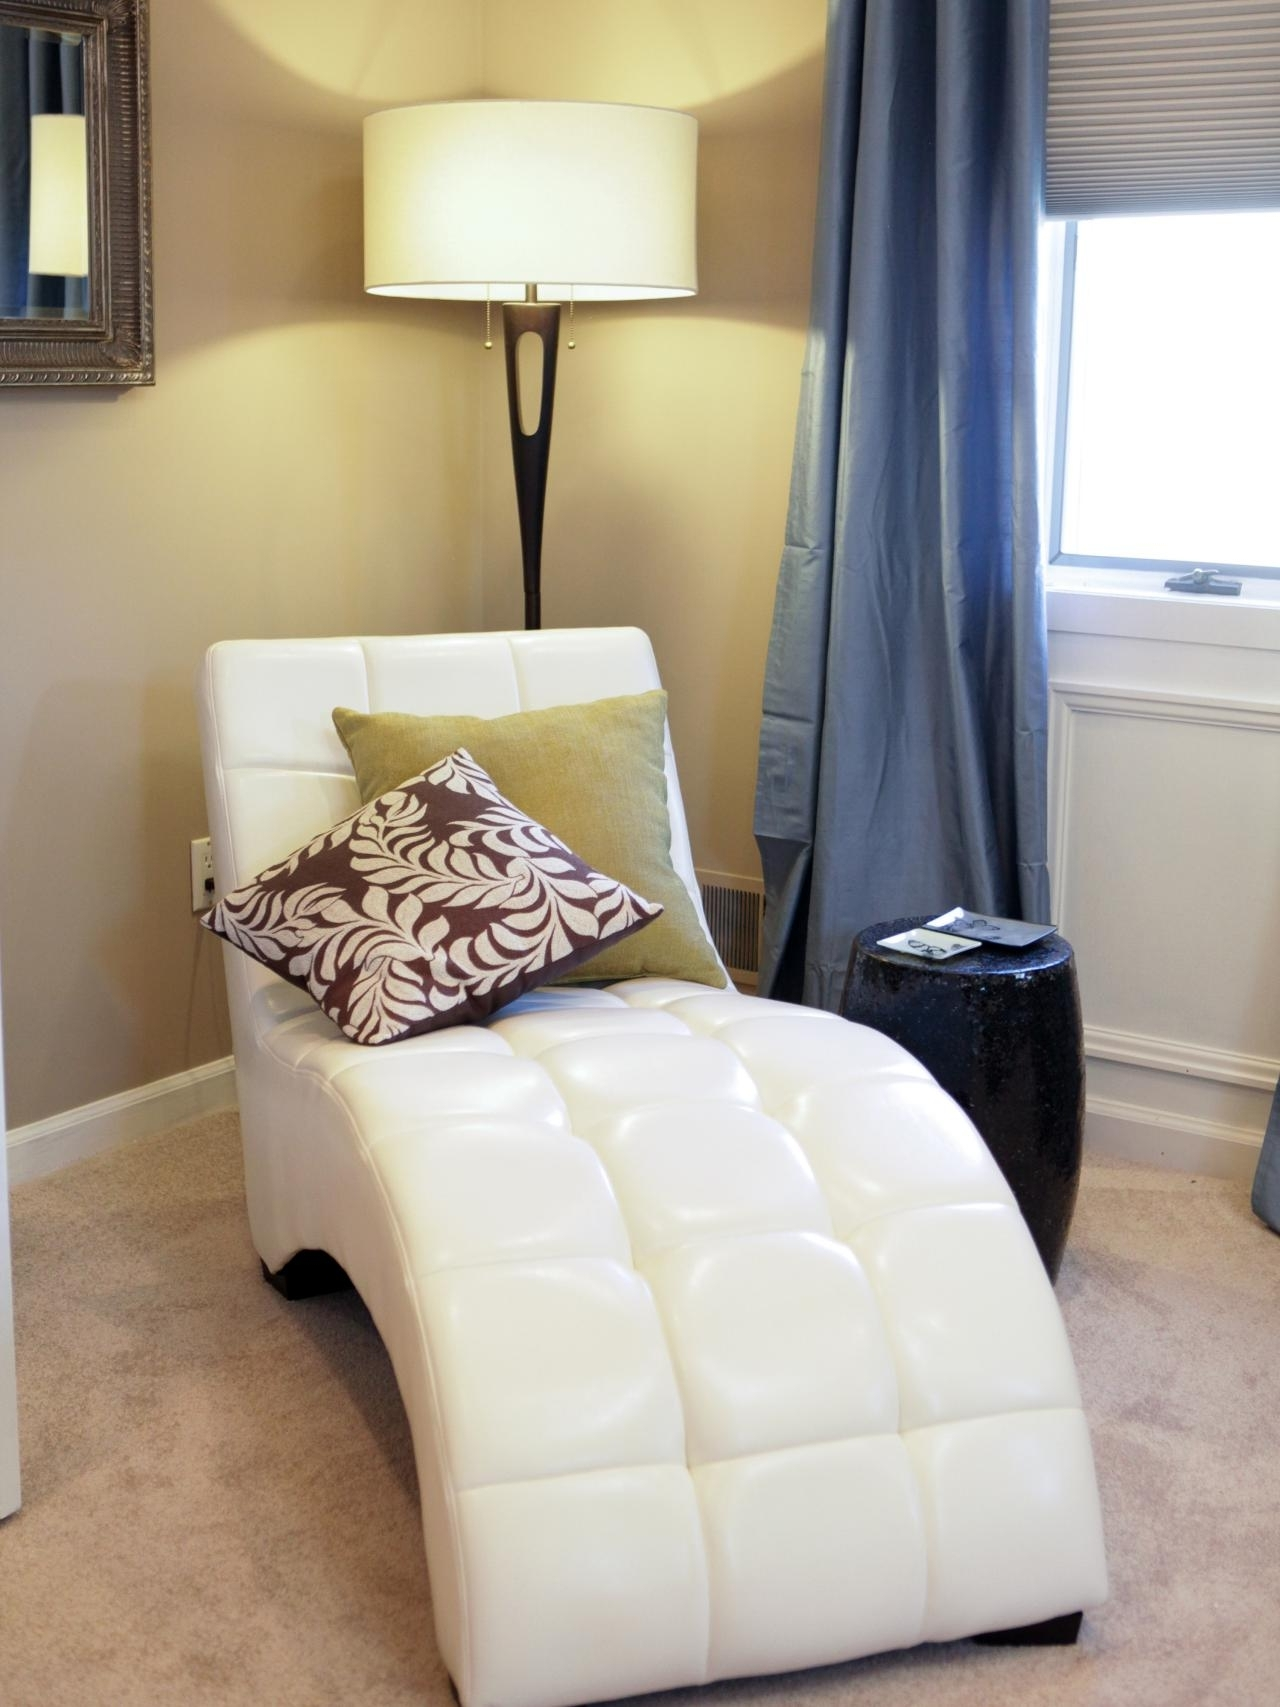 Famous White Leather Chaises Inside White Leather Chaise Lounge – White Leather Chaise Lounge, Ikea (View 11 of 15)